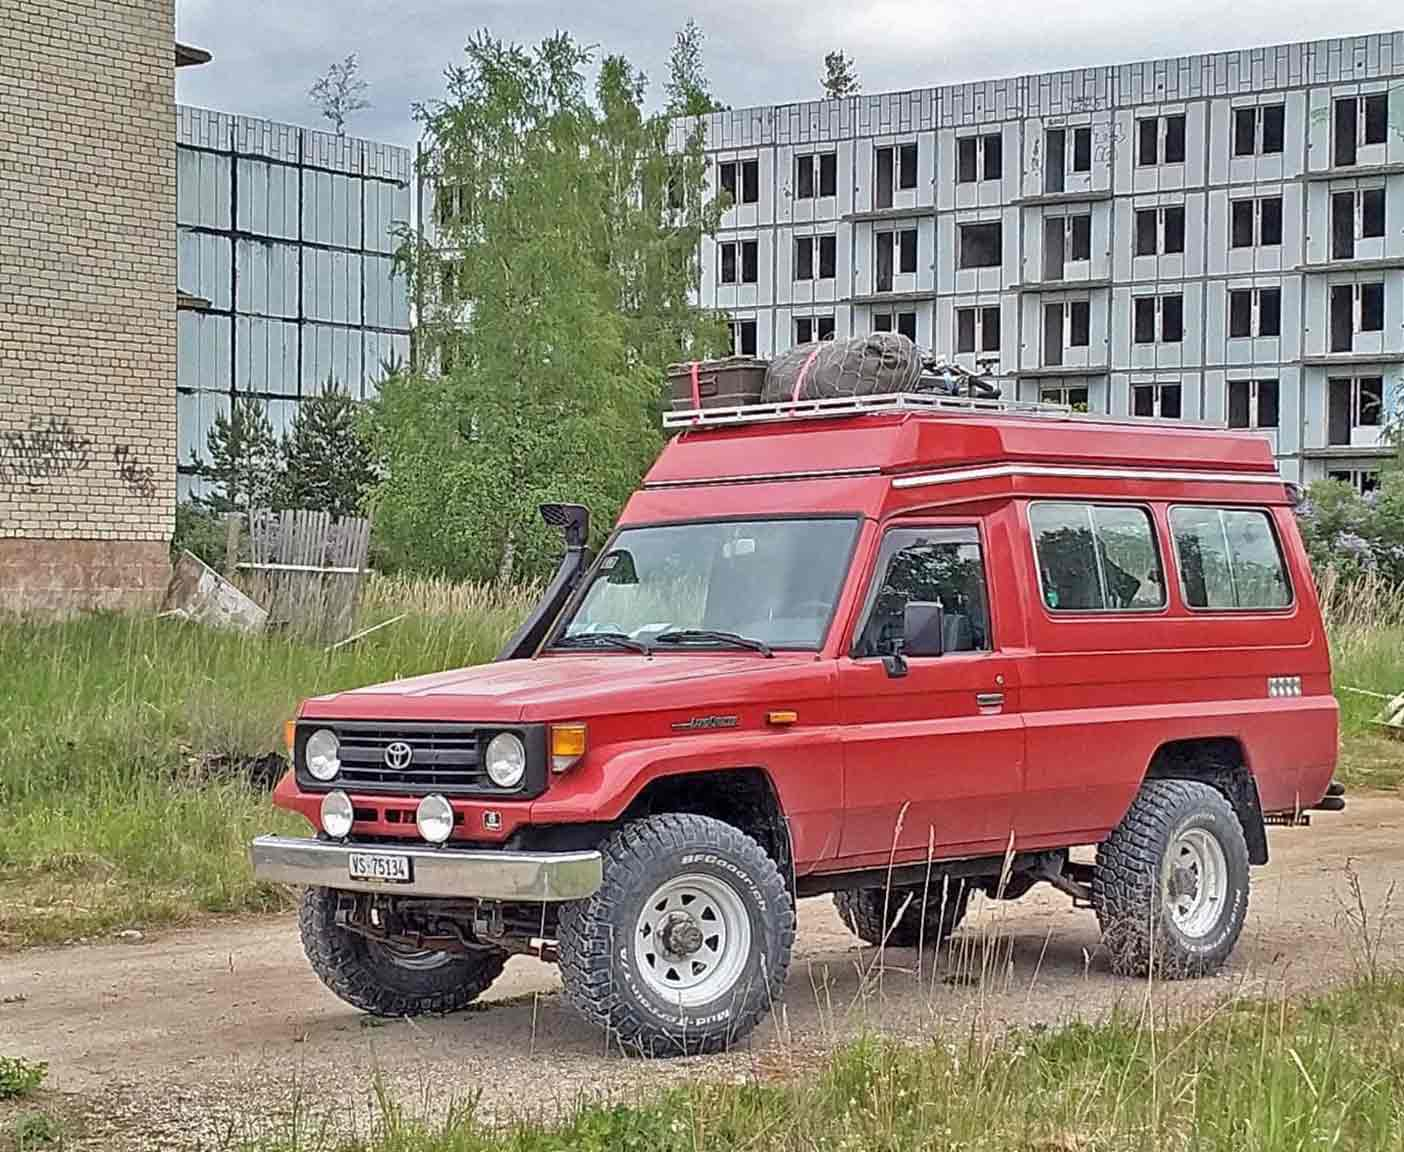 fernreisemobil-landcruiser-toyota-mercedes-allrad-expedition